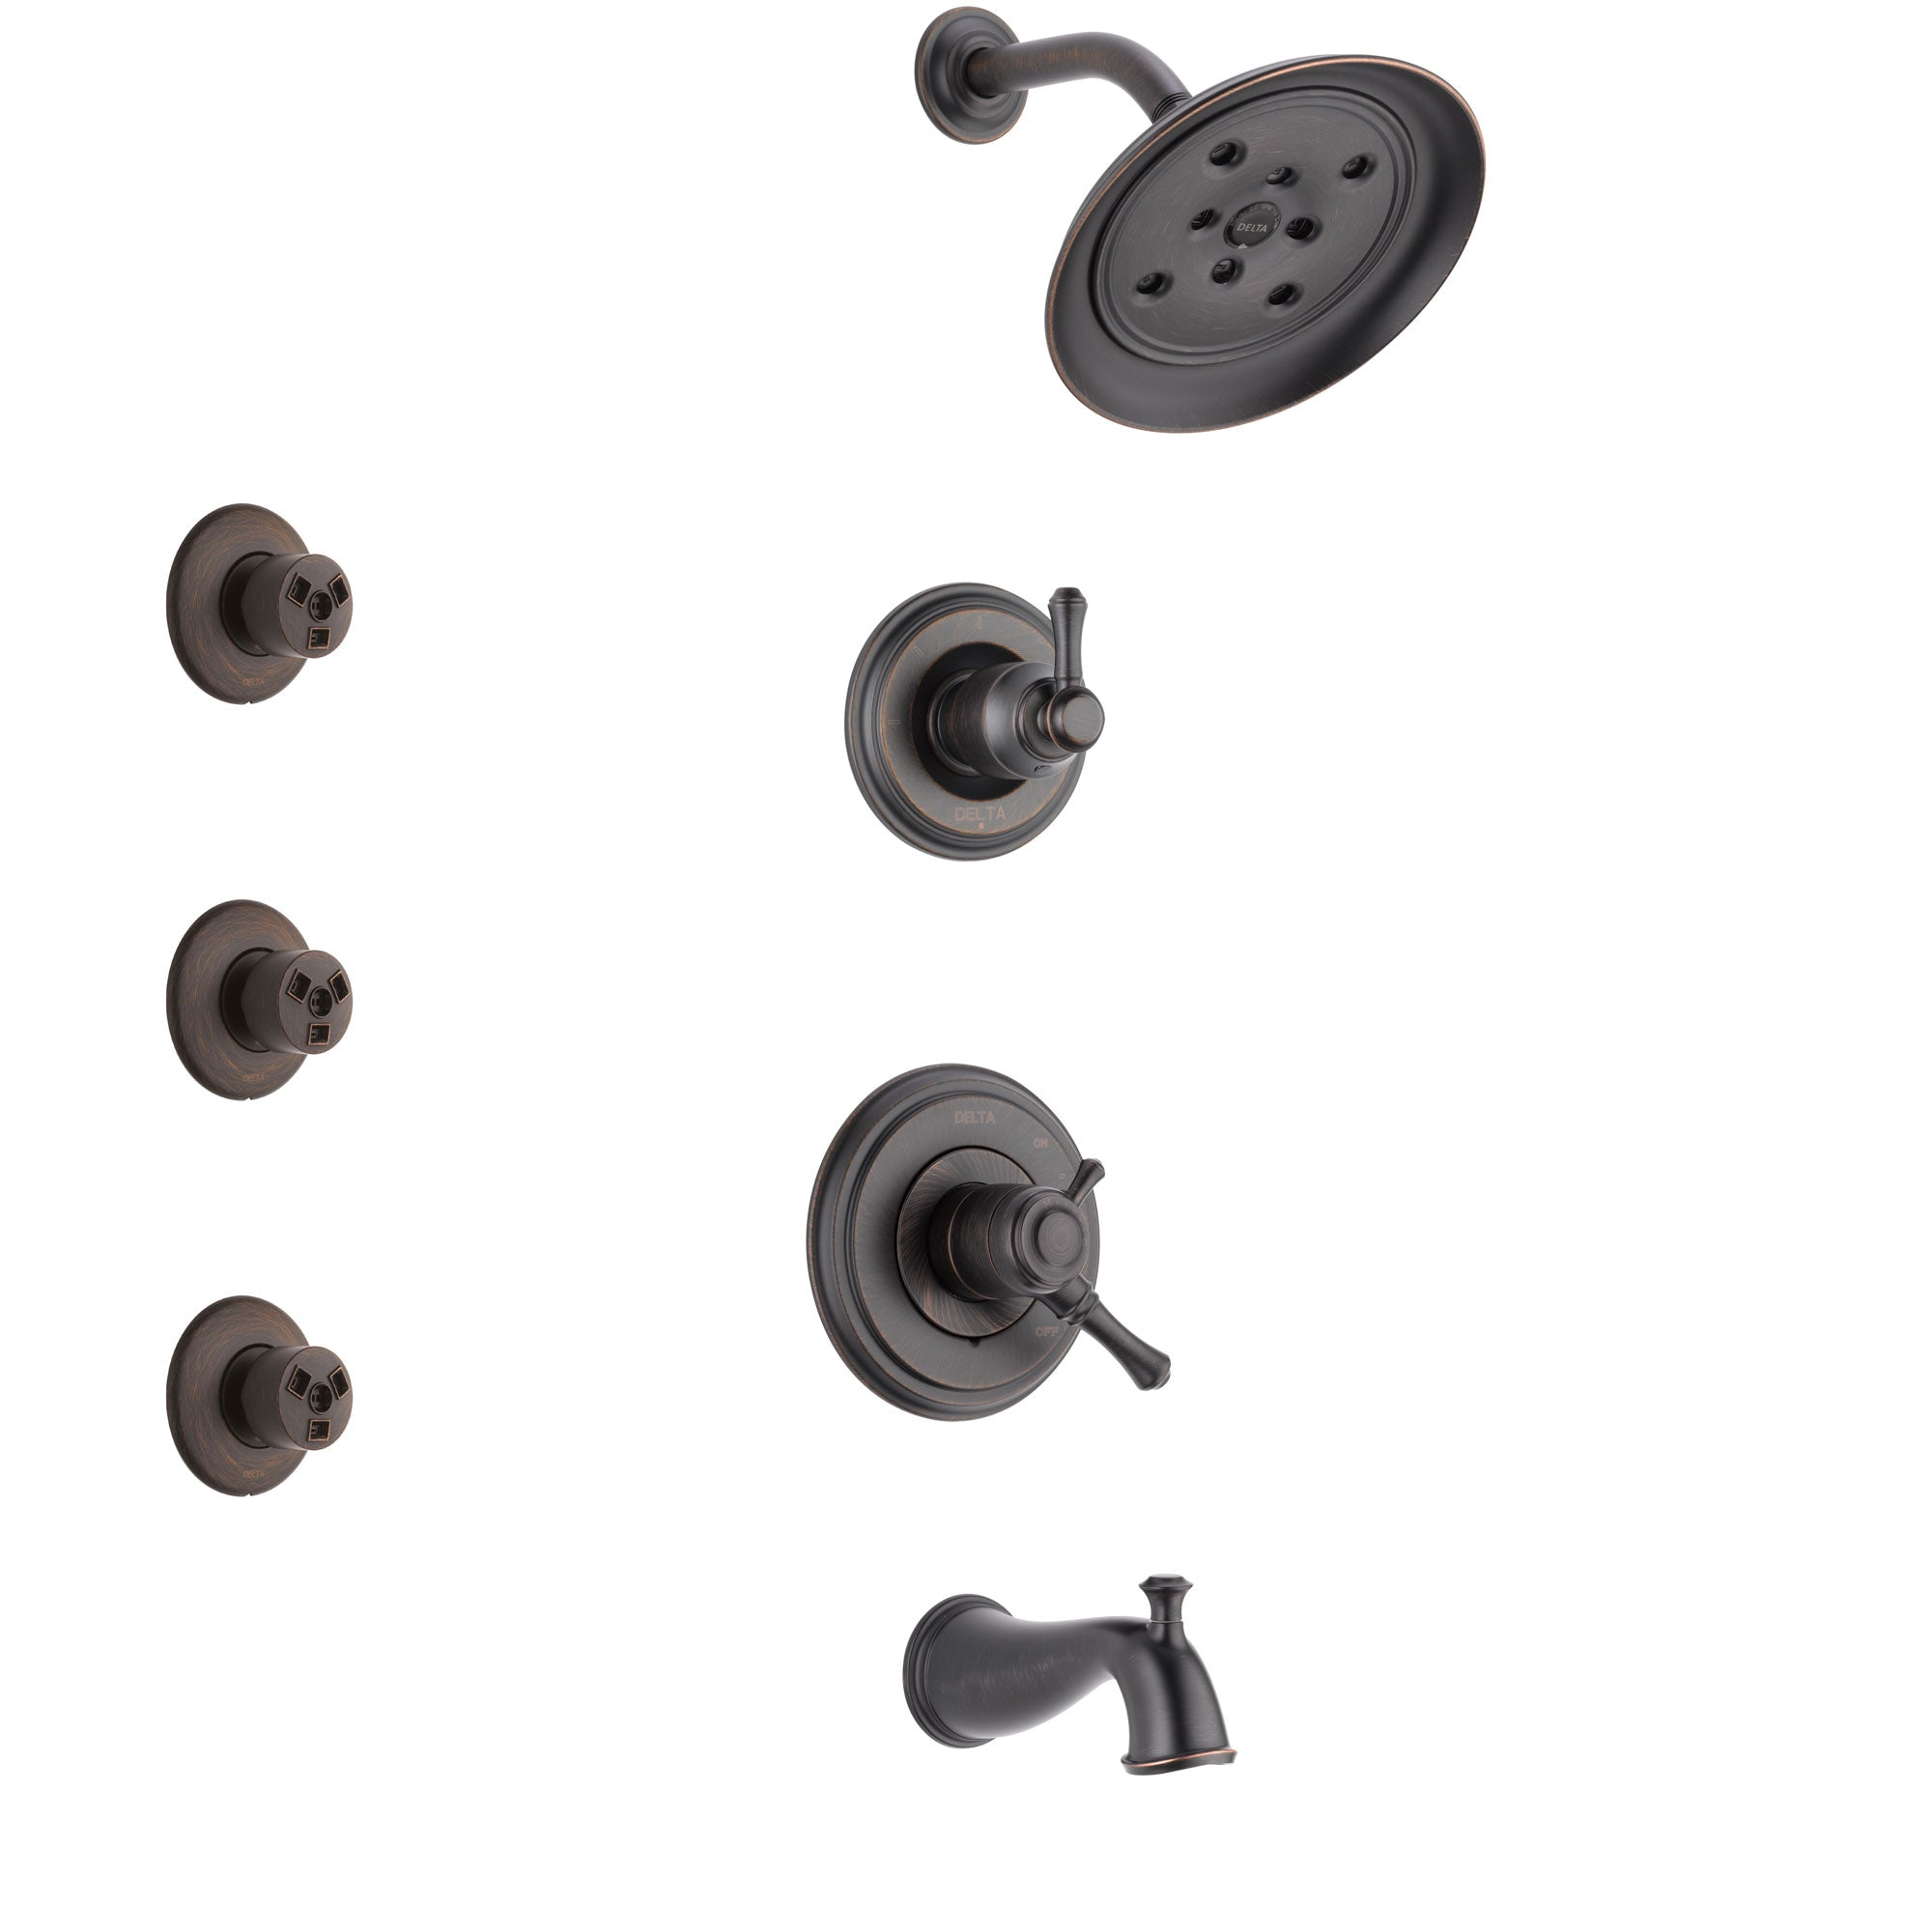 Delta Cassidy Venetian Bronze Finish Tub and Shower System with Dual Control Handle, 3-Setting Diverter, Showerhead, and 3 Body Sprays SS17497RB2